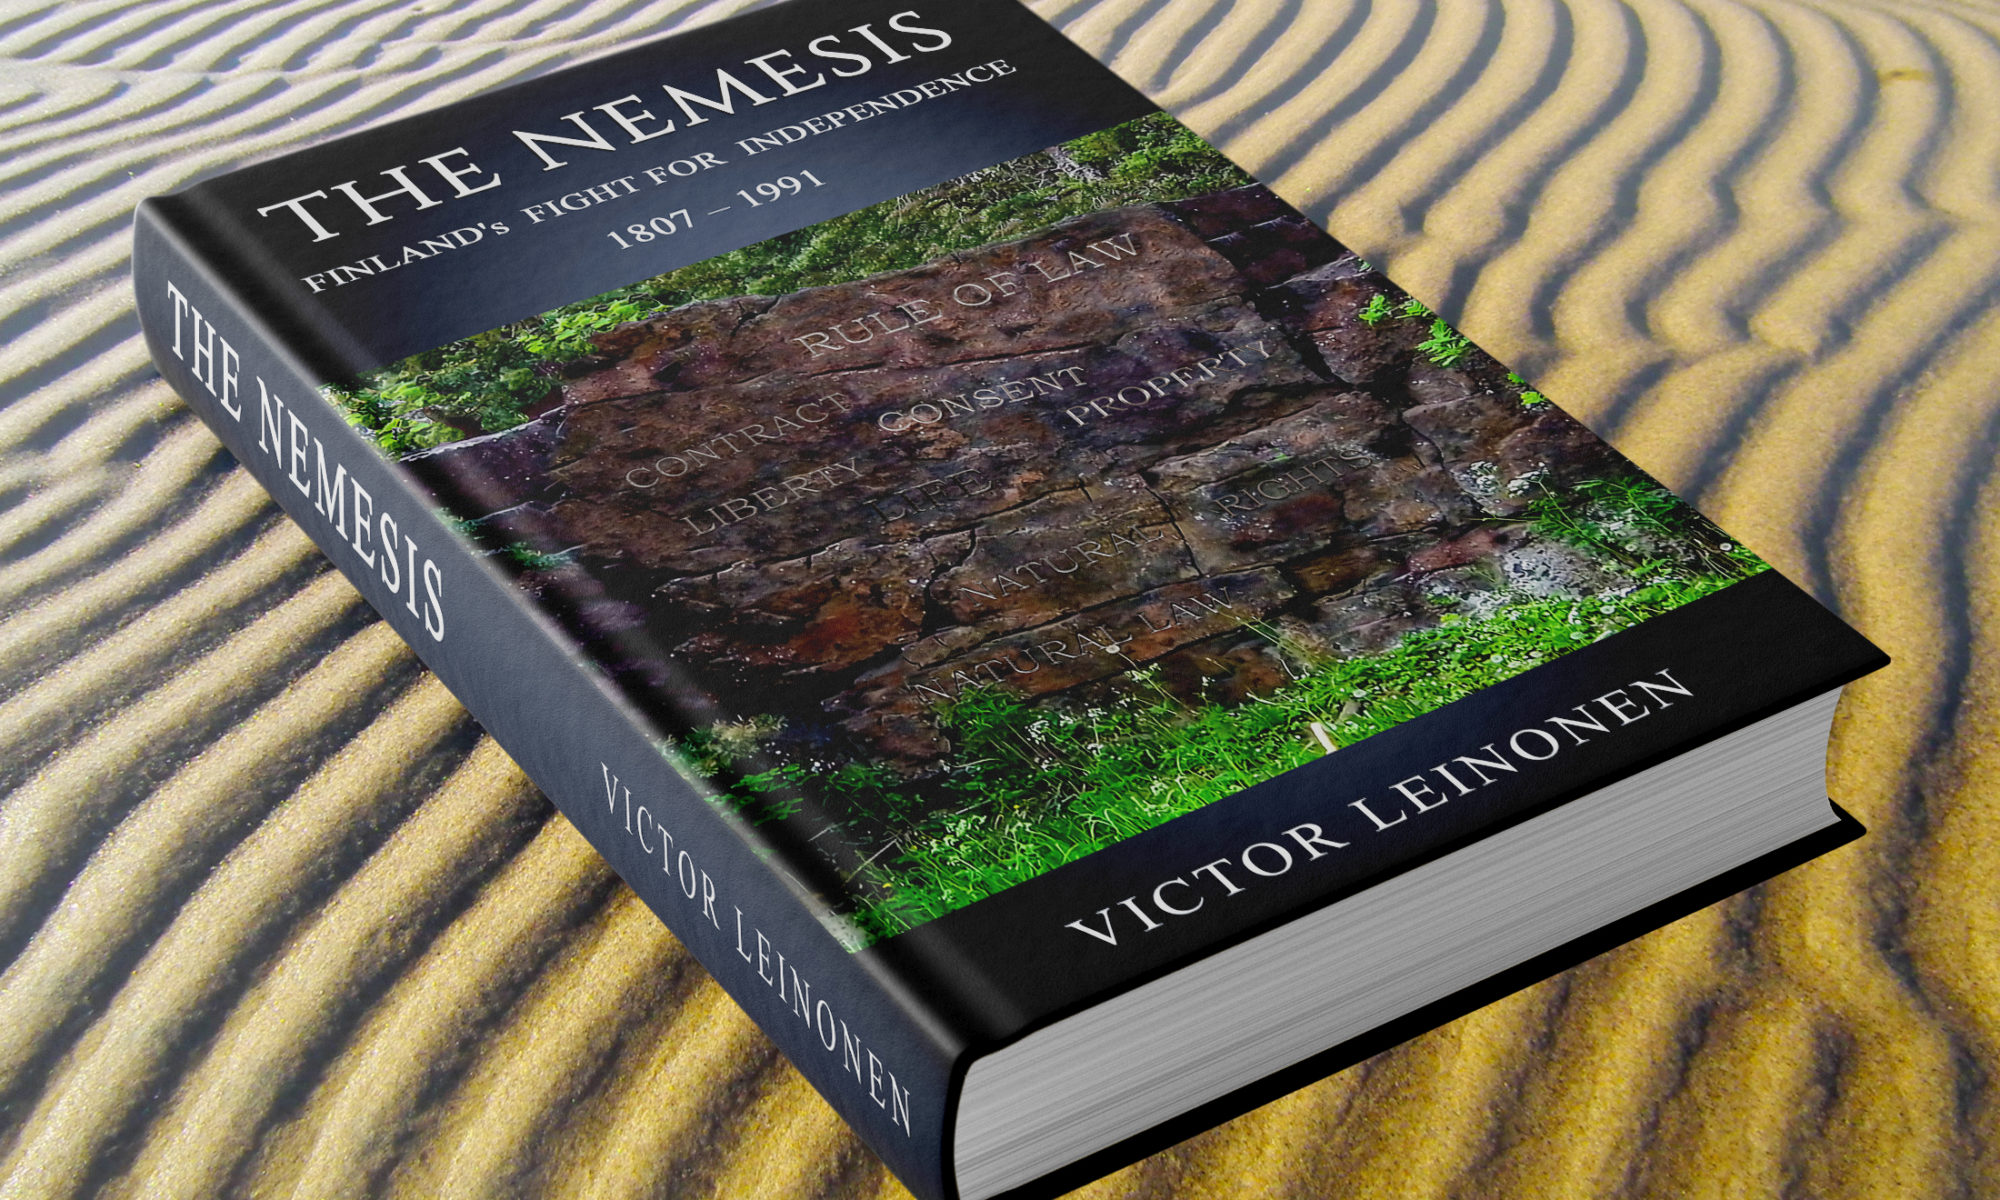 The Nemesis book